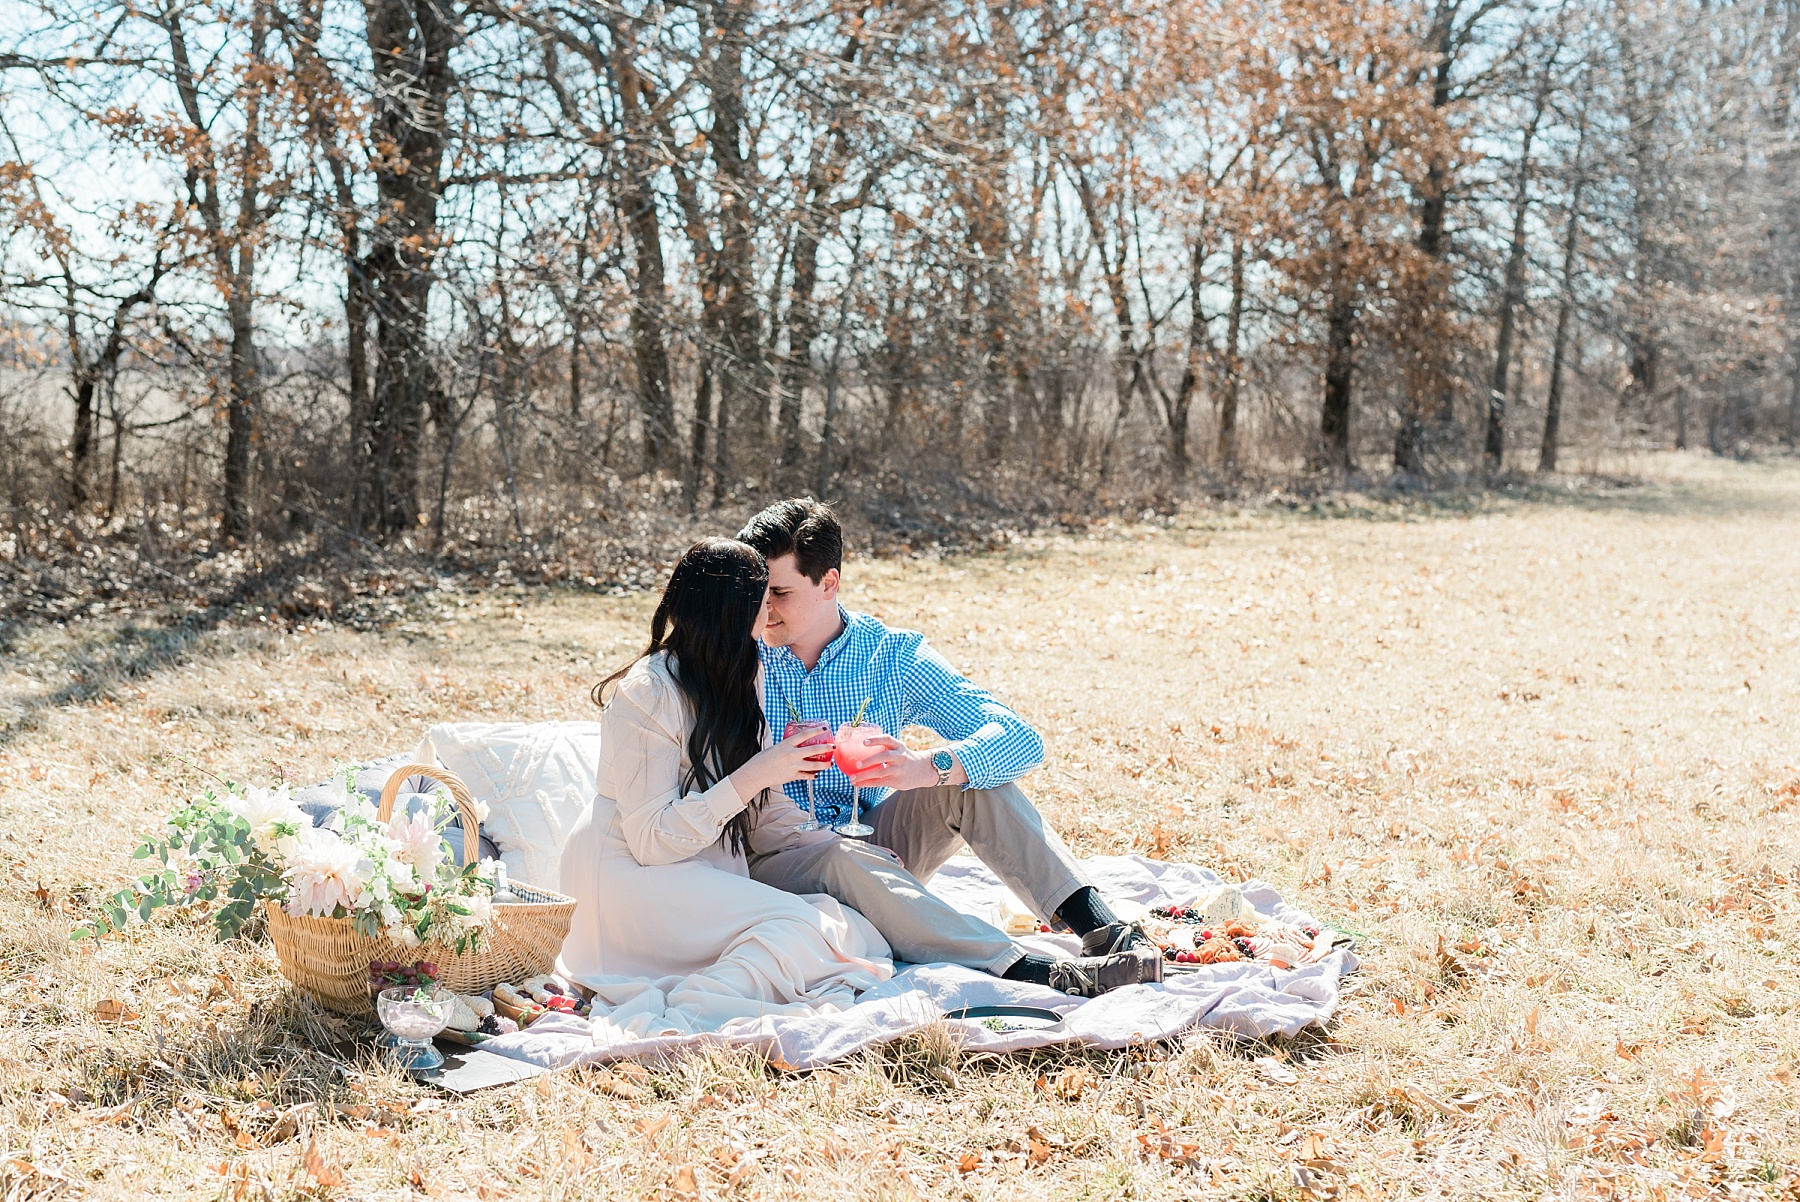 Late Fall Farm-to-table Inspired Brunch Picnic Engagement Session During Wedding Weekend by Kelsi Kliethermes Photography Best Missouri and Maui Wedding Photographer_0012.jpg